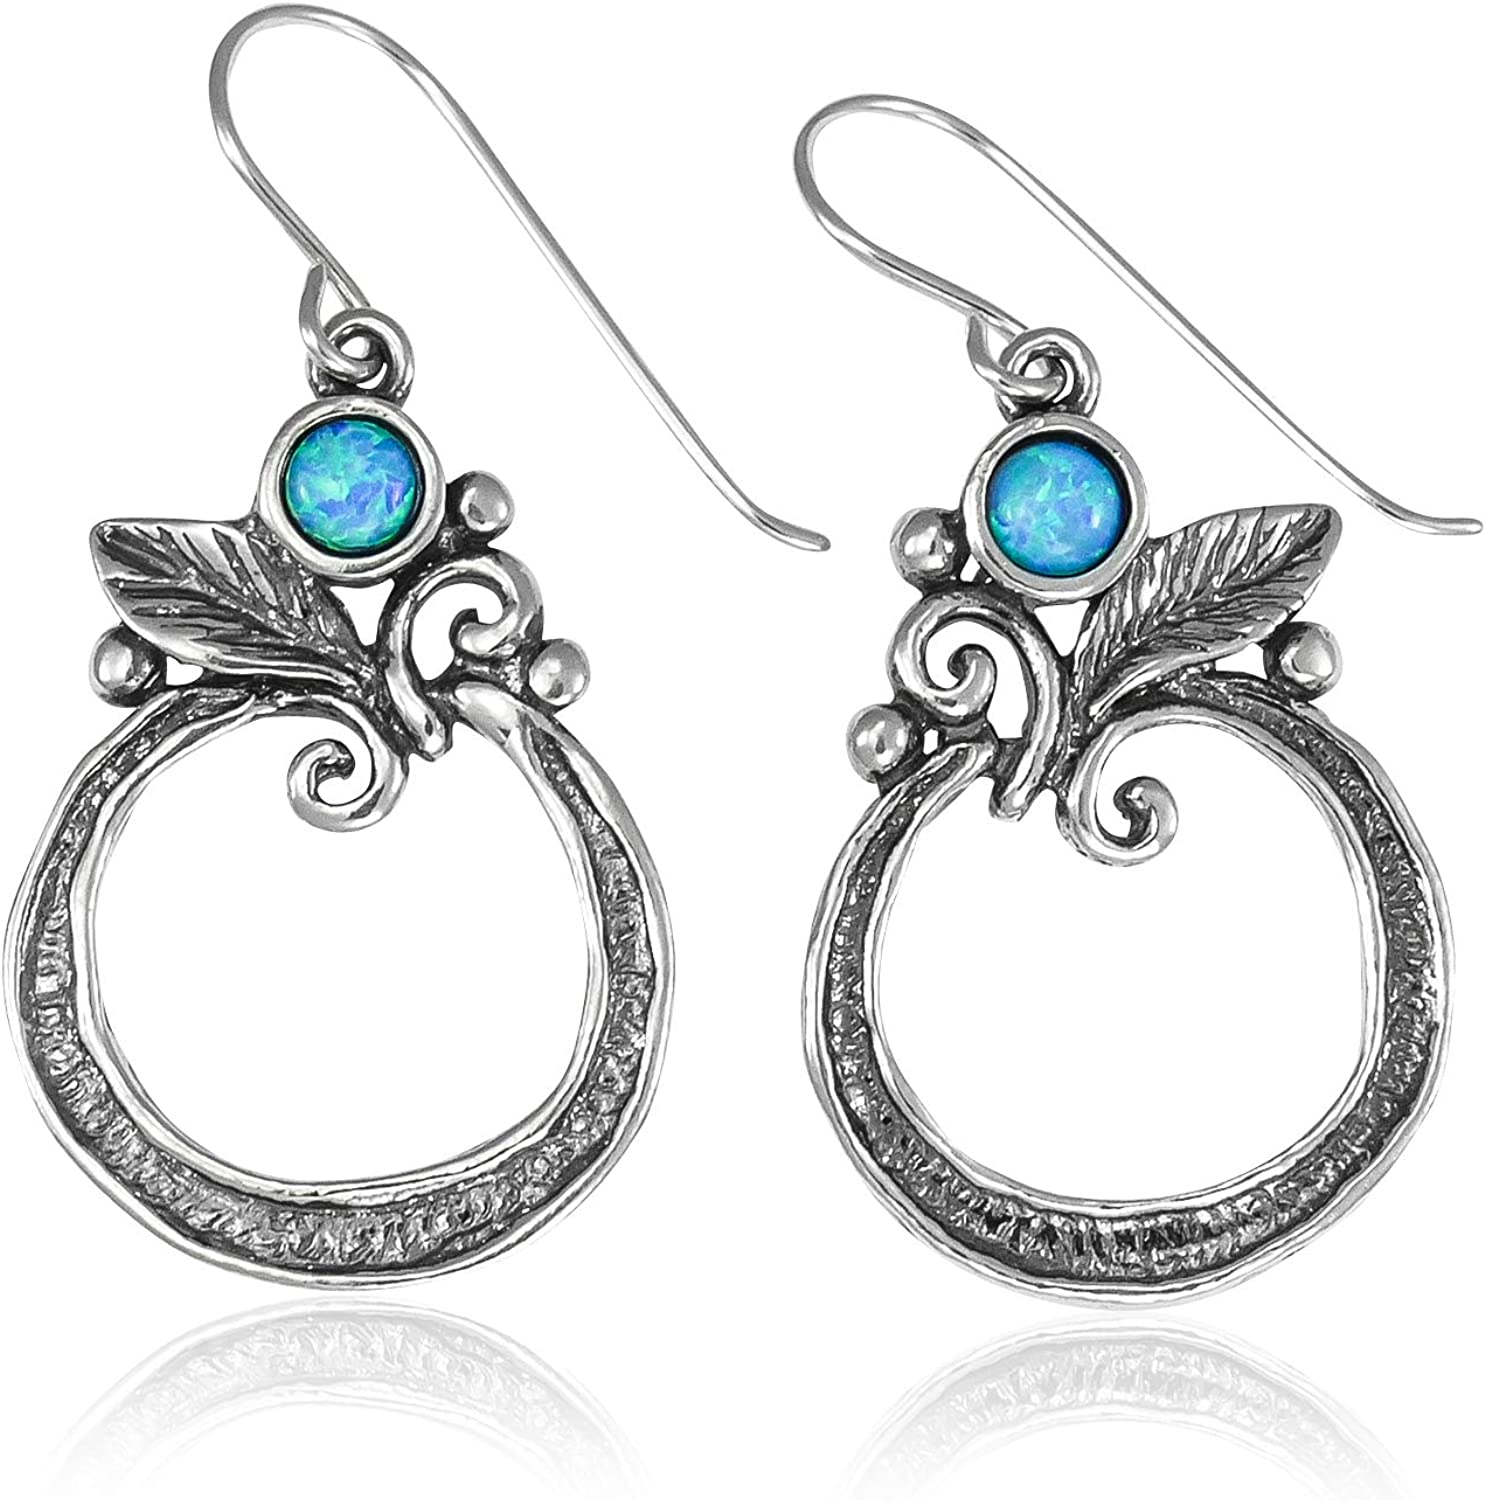 SHABLOOL 2021 autumn and winter new Earring 925 Sterling Silver Cabochon Op 5% OFF Blue With Light